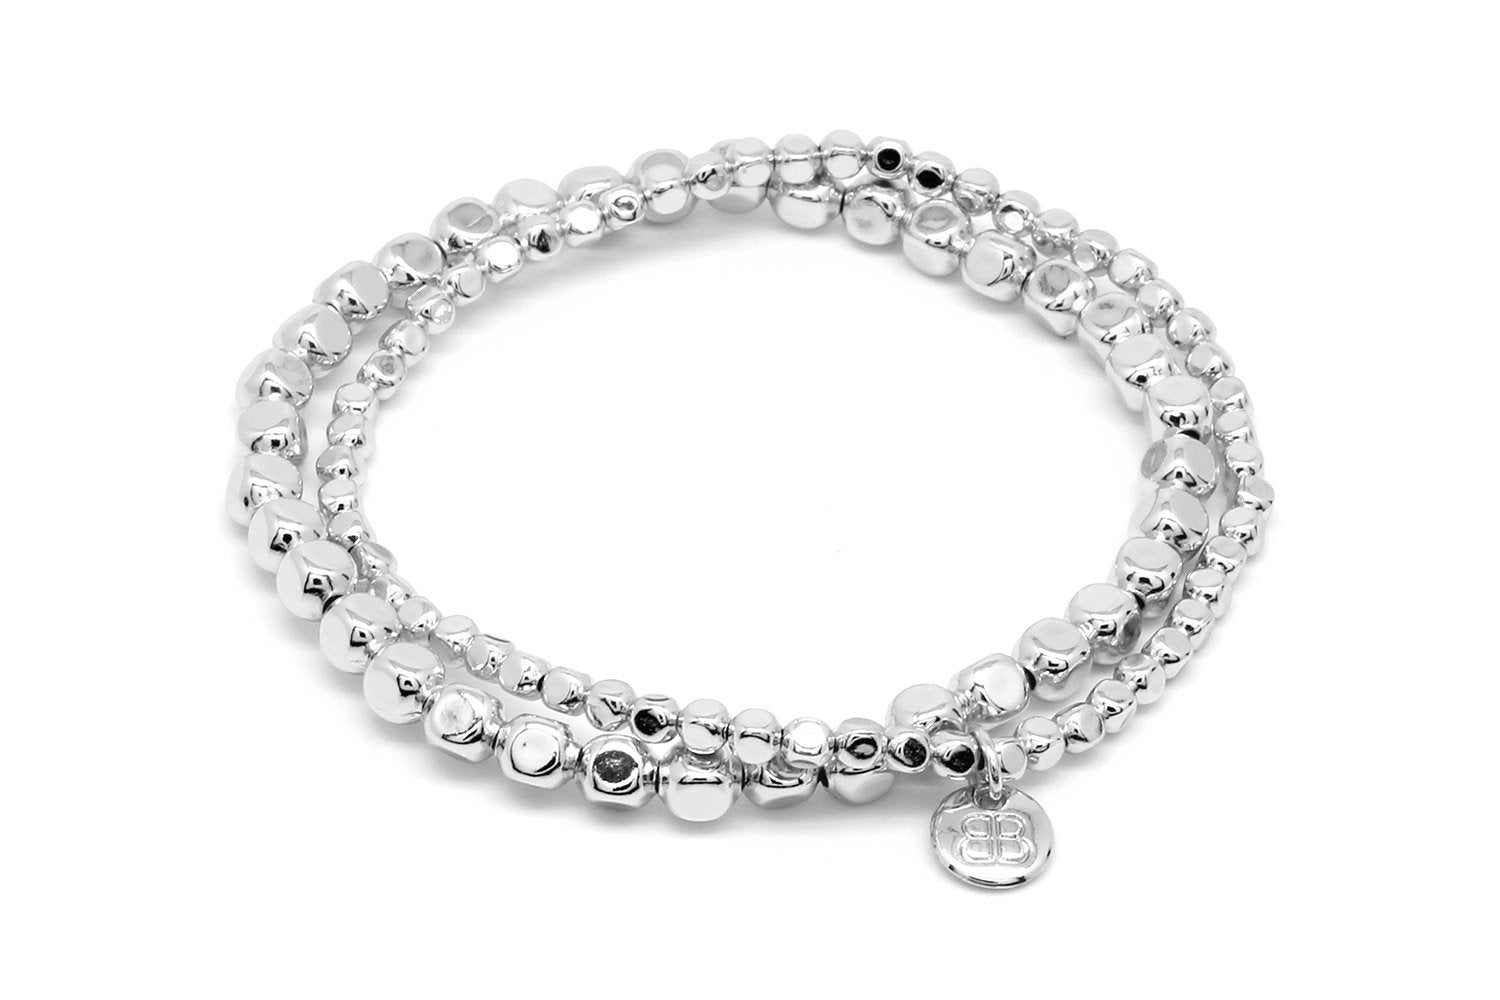 Sabal Major Silver Nugget Bracelet Set